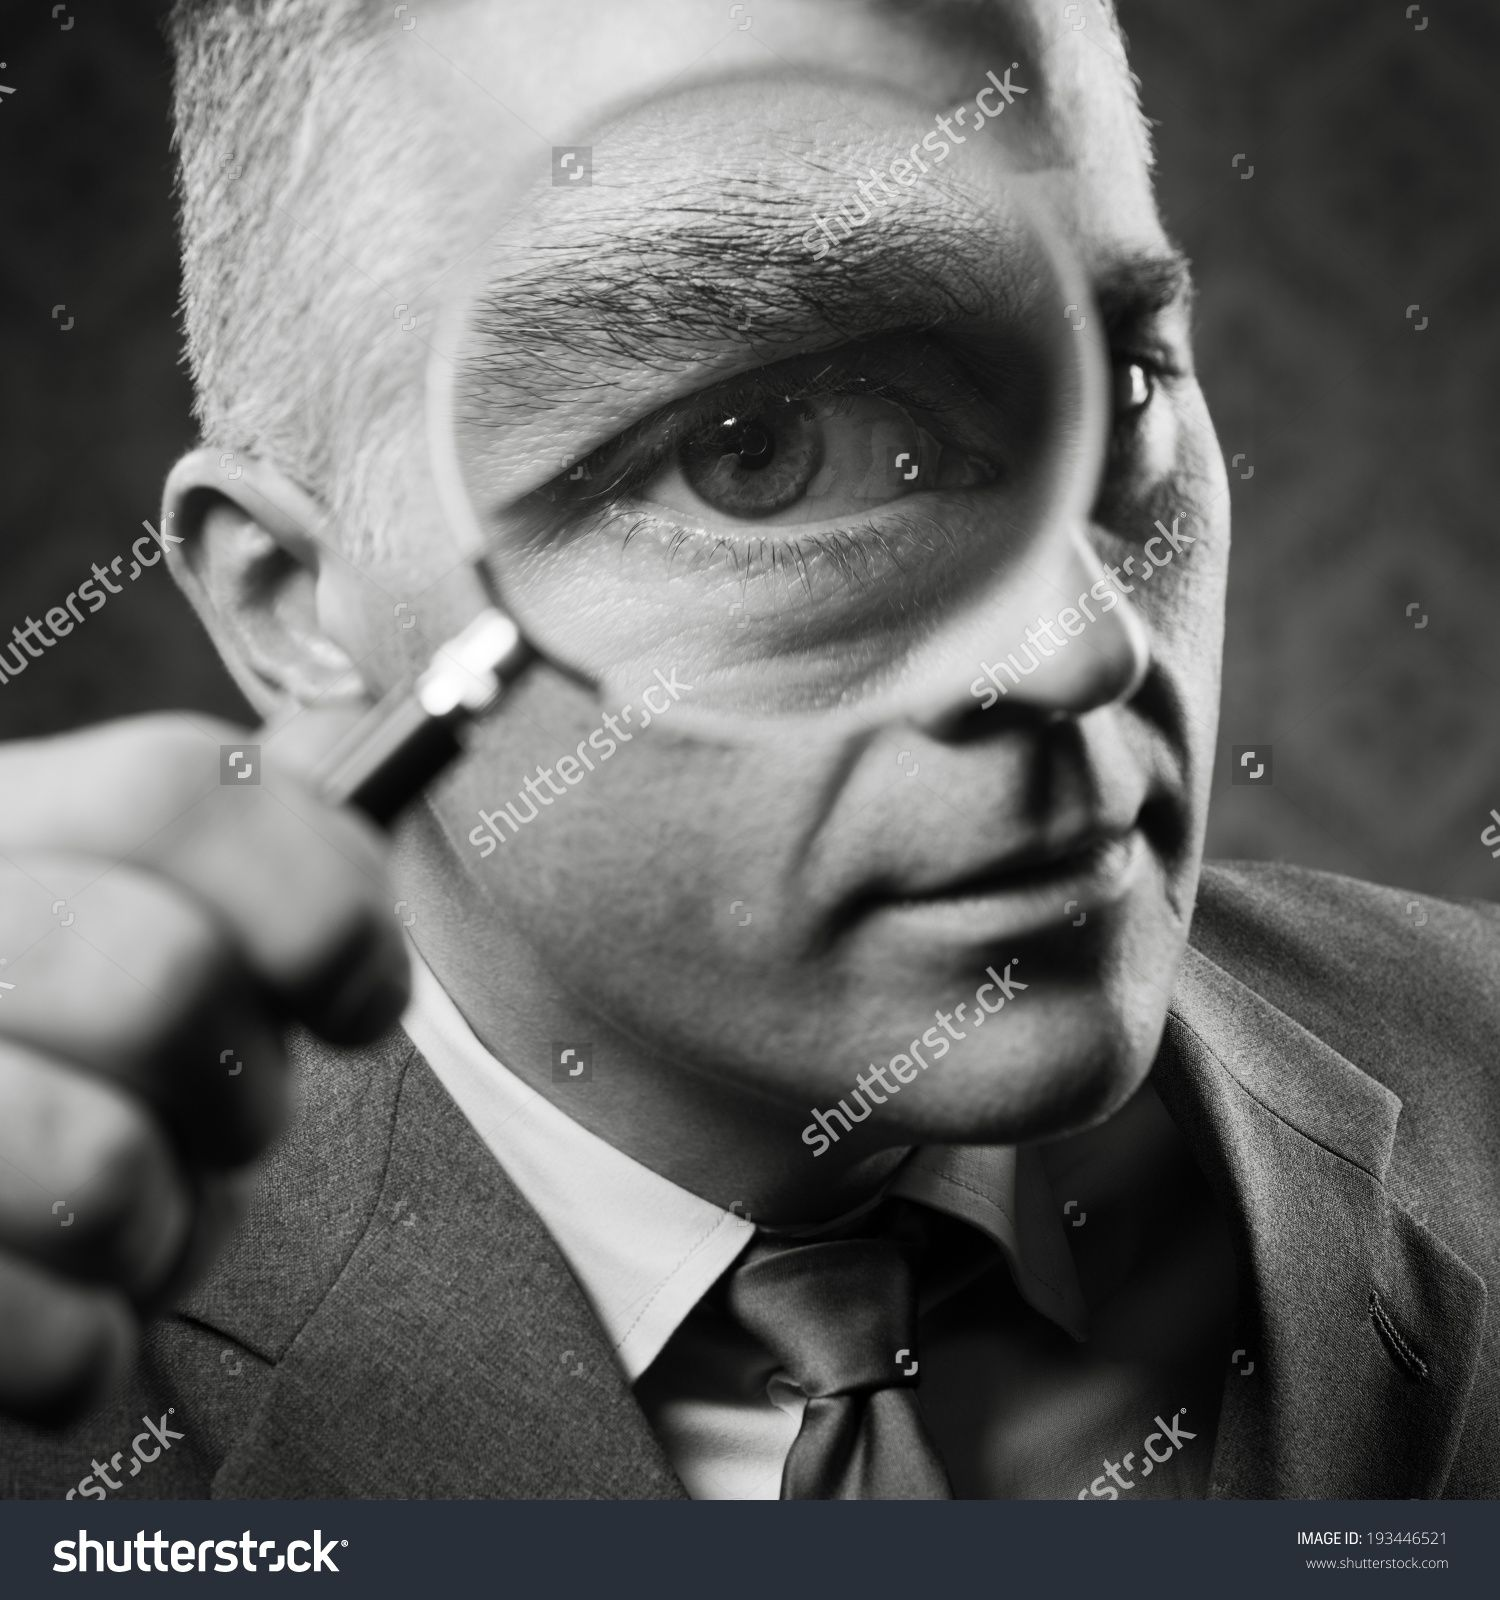 Vintage Detective Looking At Camera Through Magnifying Glass